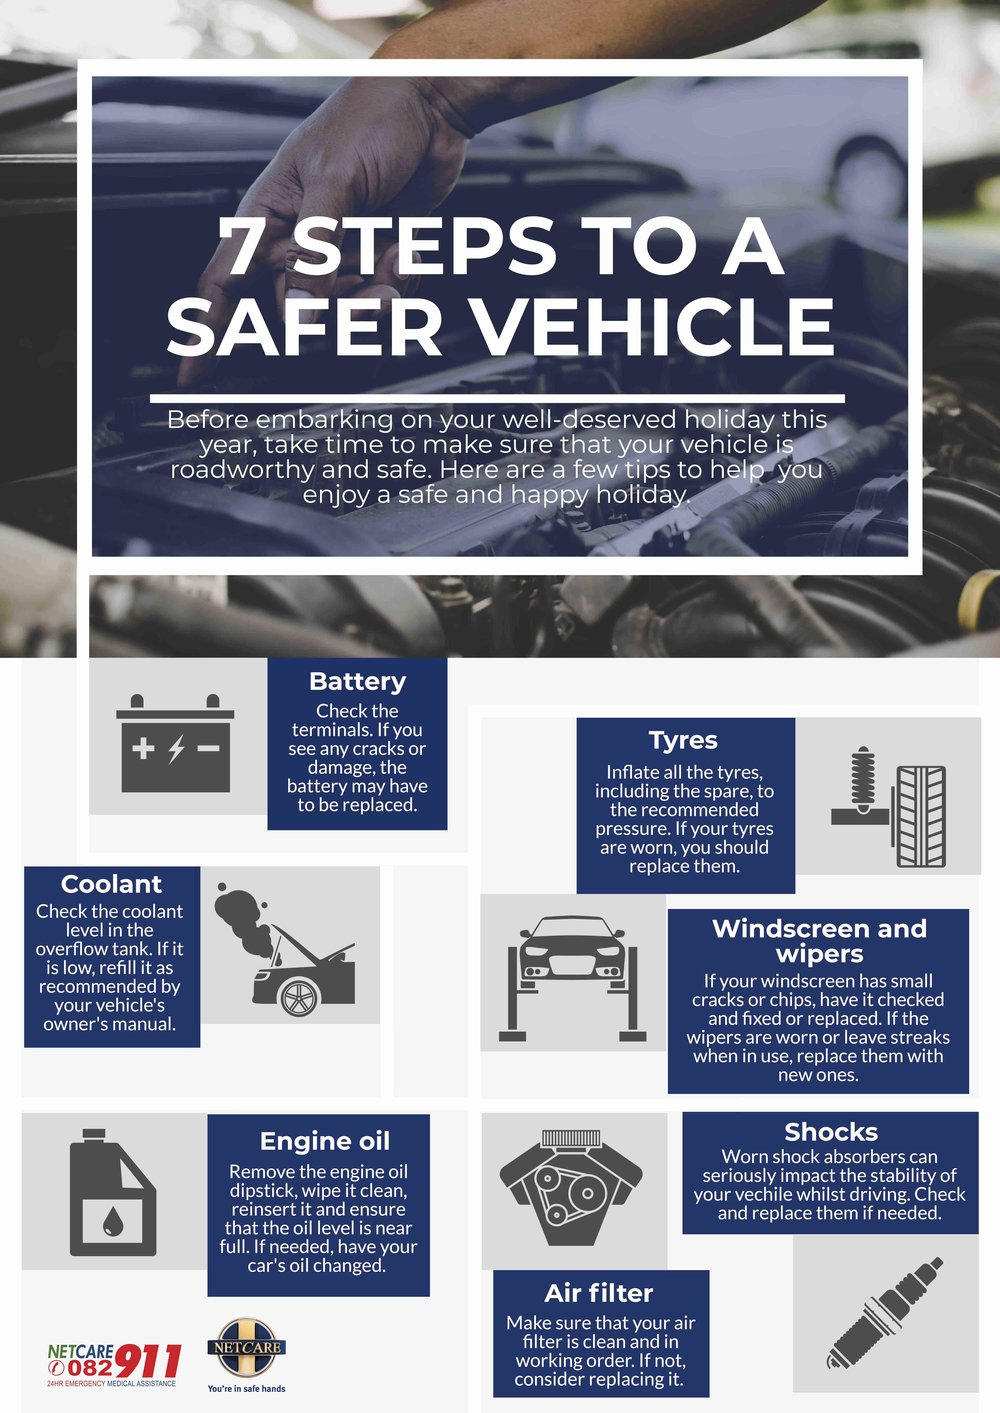 7 Steps to a safer vehicle.jpg